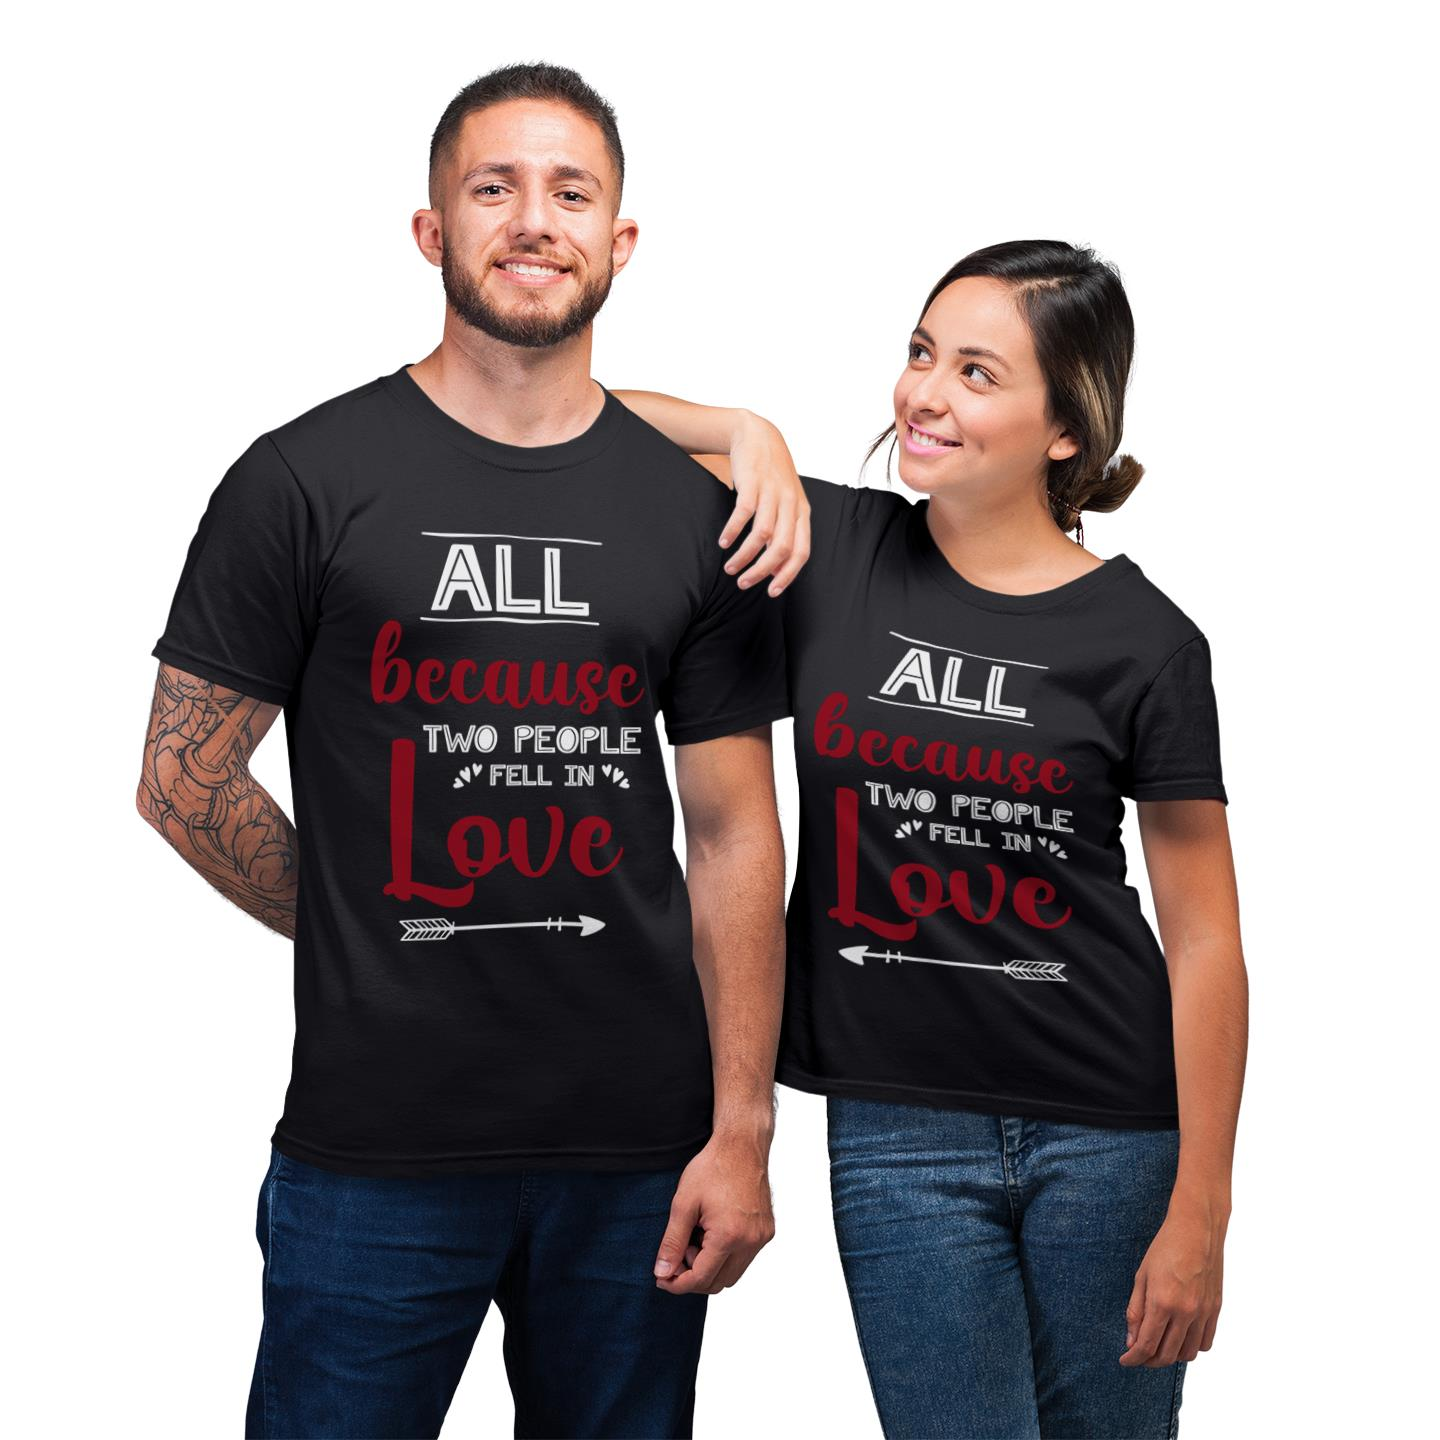 All Because Two People Fell In Love Shirt For Couple Lover Matching T-shirt